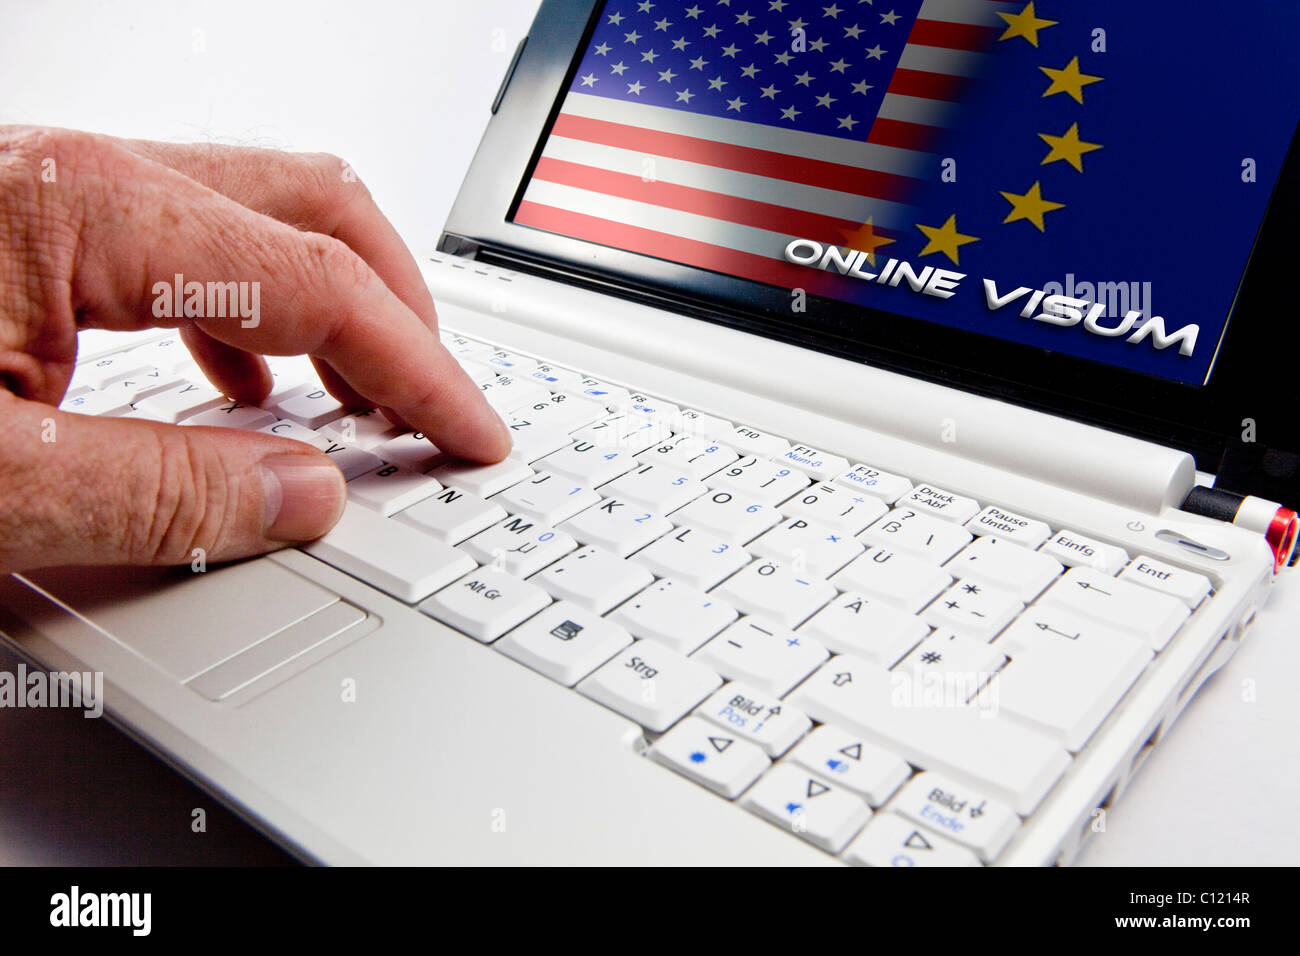 Online visa for travels to the U.S. from Europe via computer - Stock Image